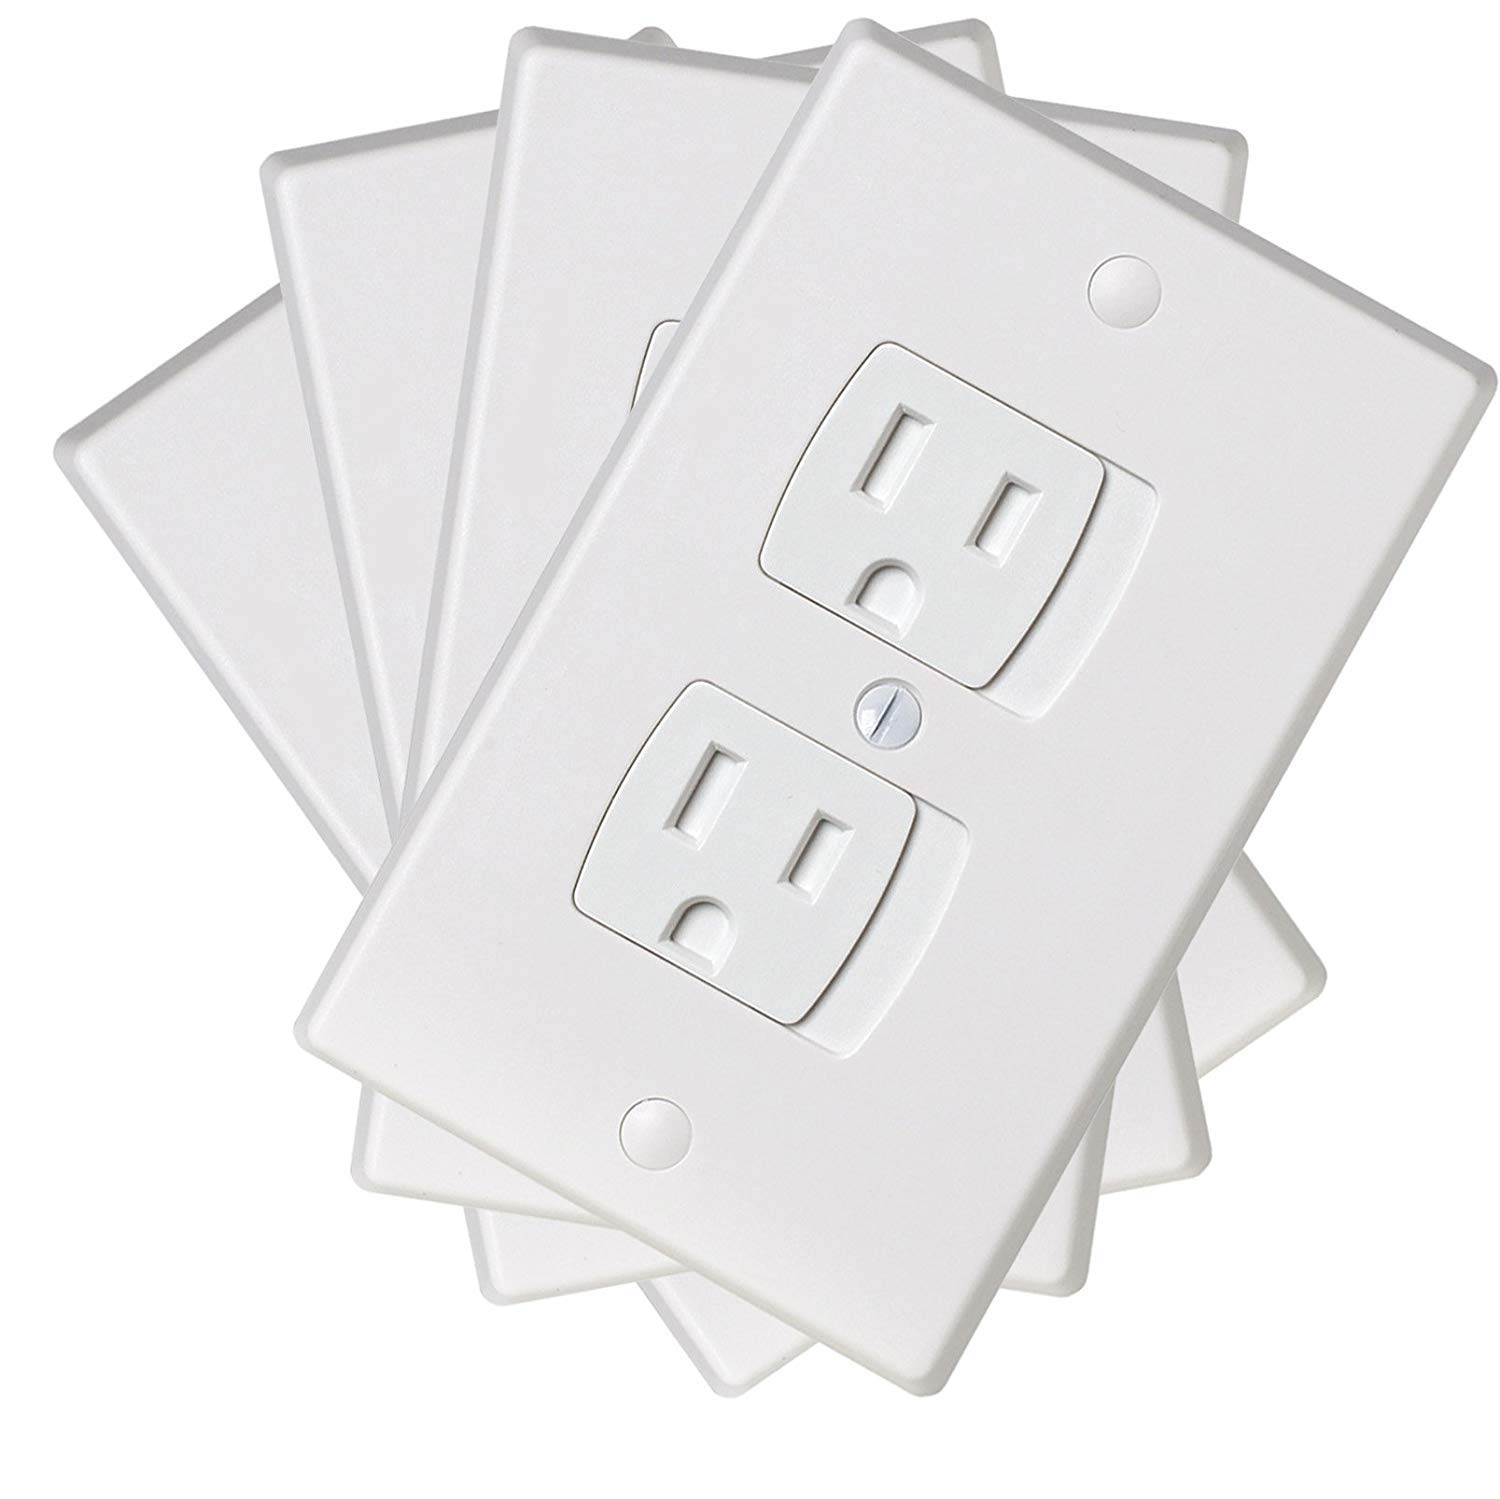 Ziz Home Self-Closing Childproof Outlet Covers | 4 Pack | White | Universal Electric Outlet Cover - Baby Proof Kit - Child Safety Wall Socket Plug - Durable ABS Plastic - Protection | Proofing